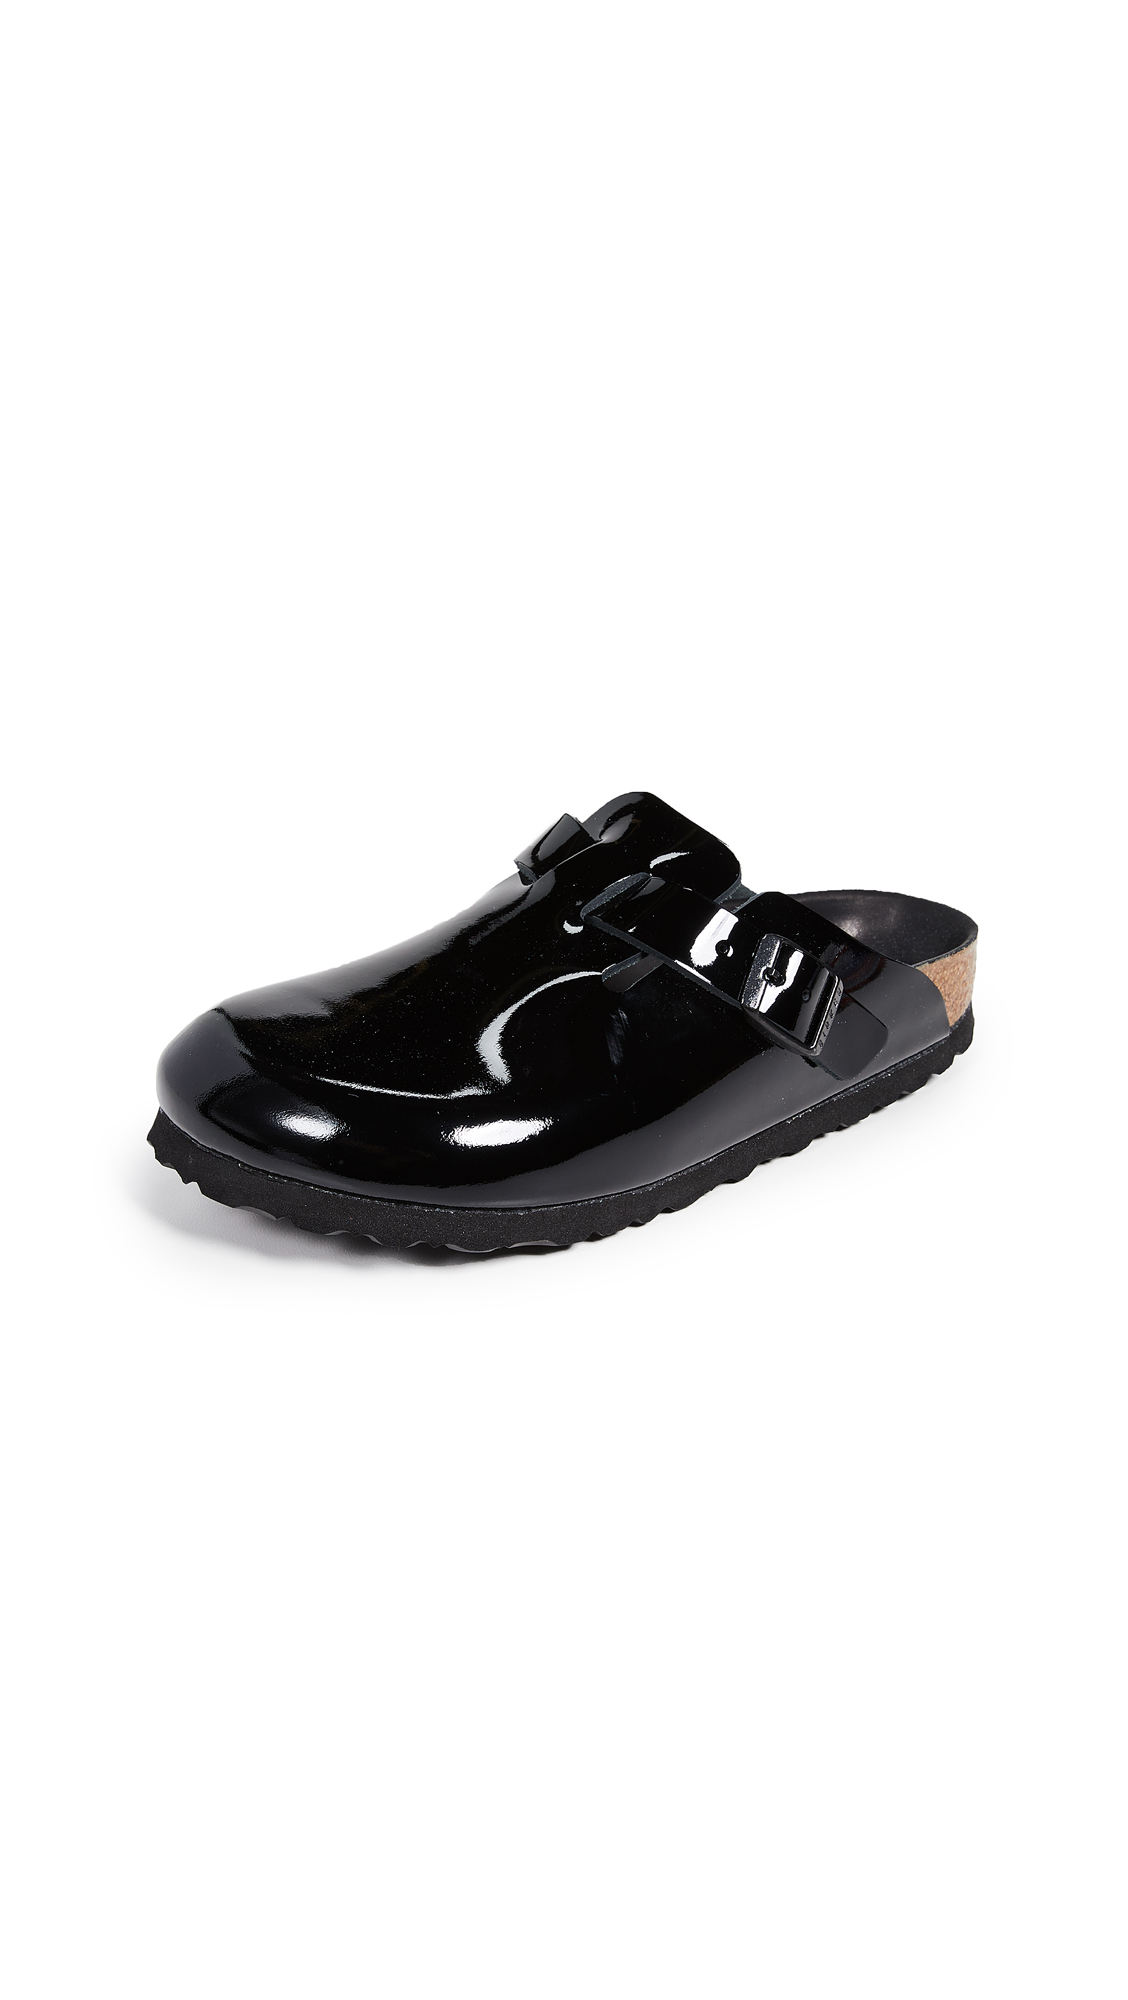 Birkenstock Boston Black Patent Clogs - Black